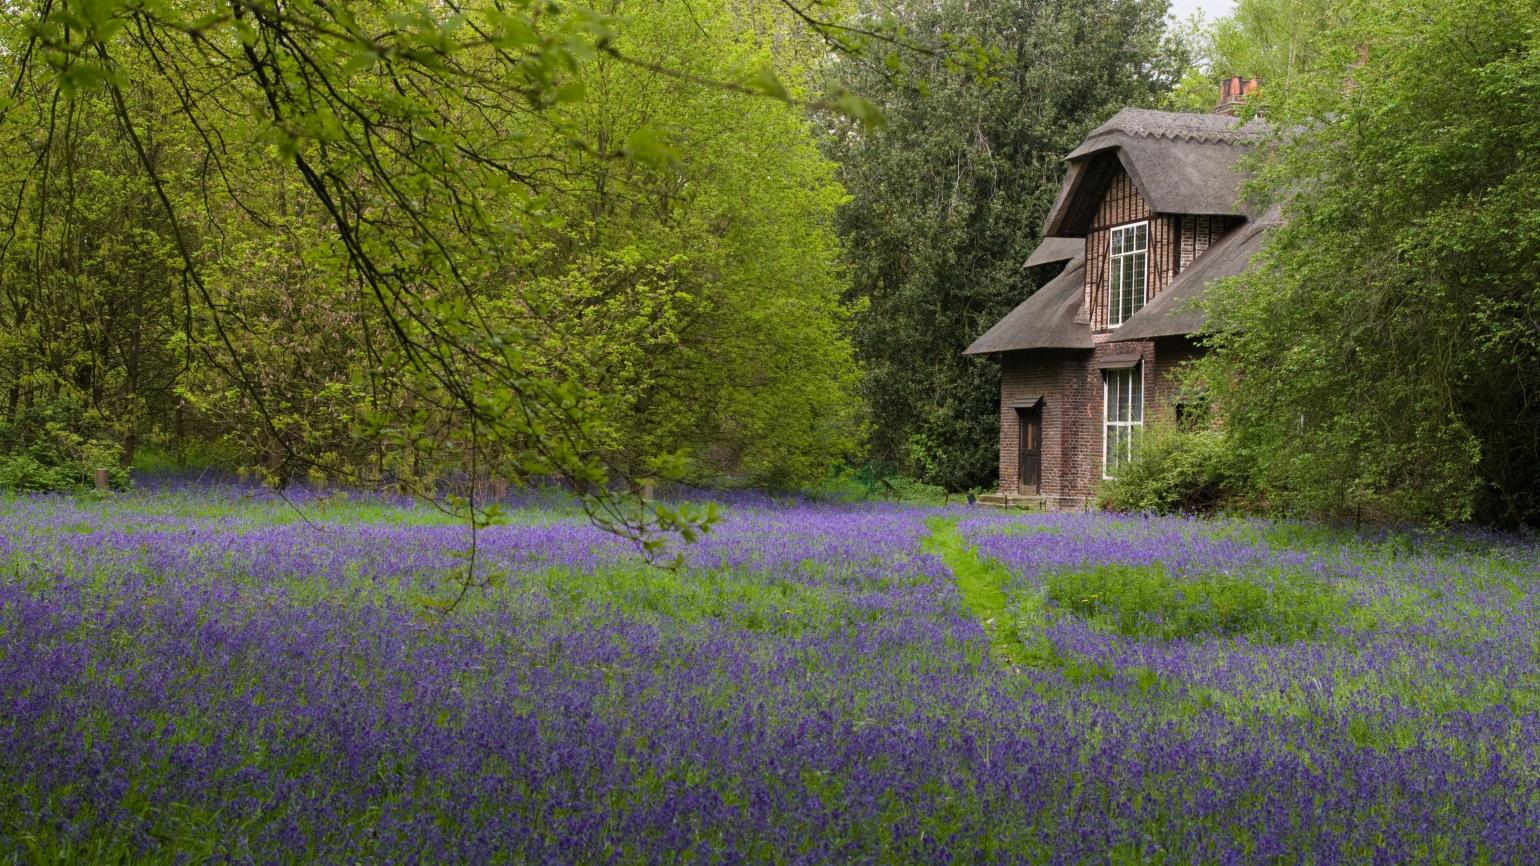 Bluebells blooming in front of Queen Charlotte's Cottage